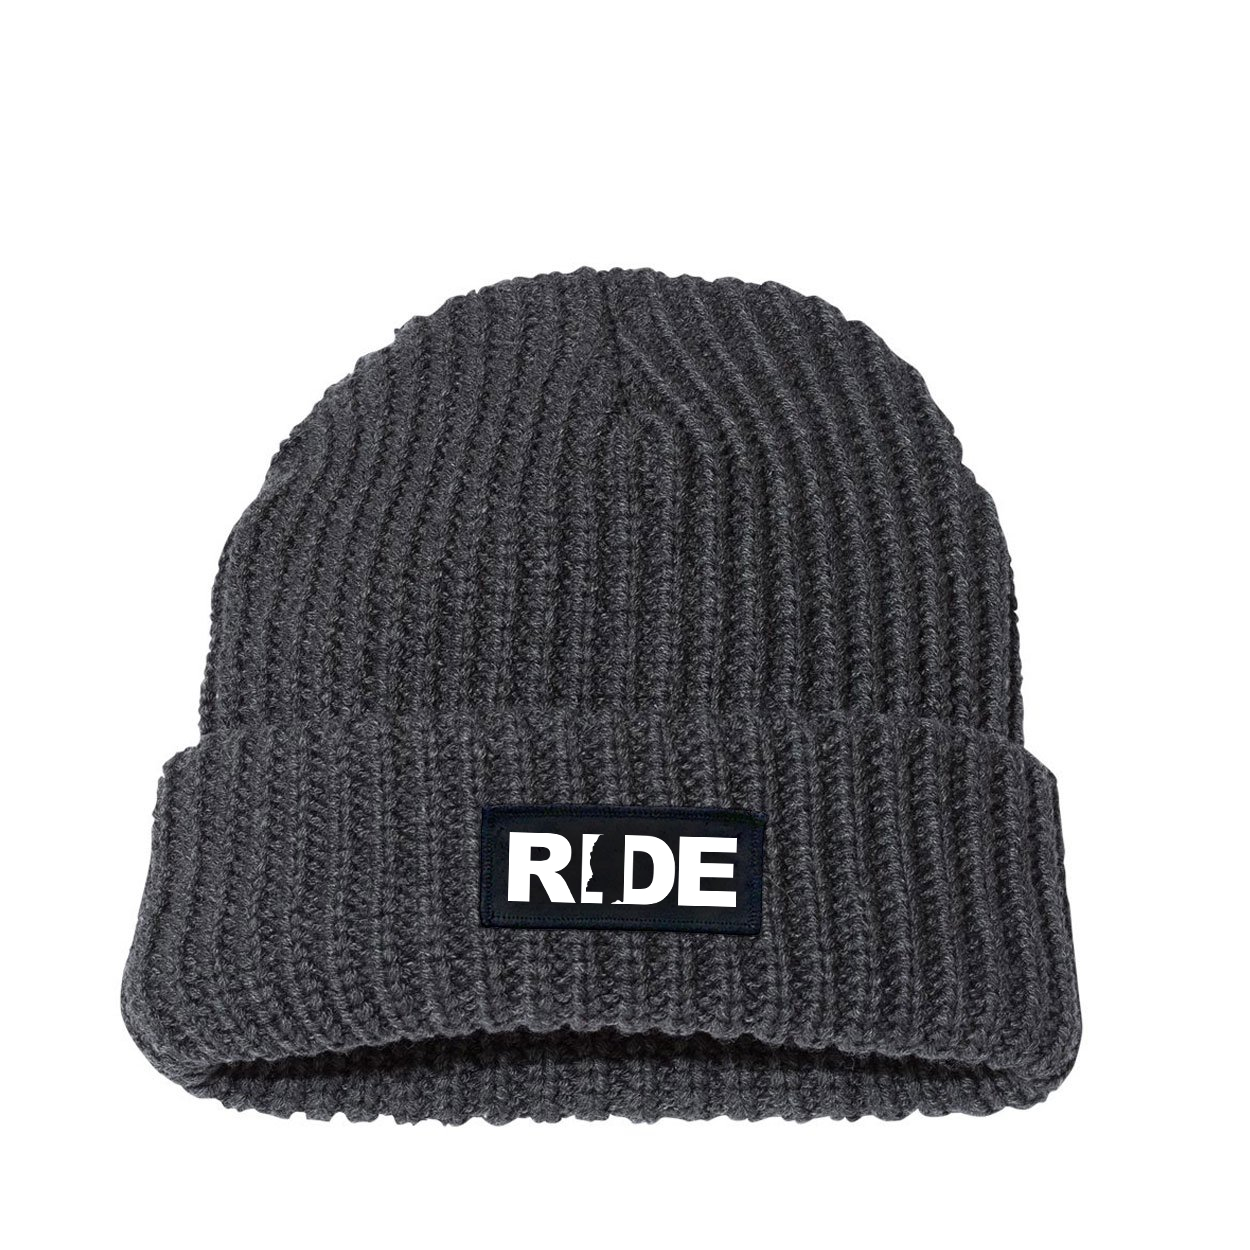 Ride Mississippi Night Out Woven Patch Roll Up Jumbo Chunky Knit Beanie Charcoal (White Logo)